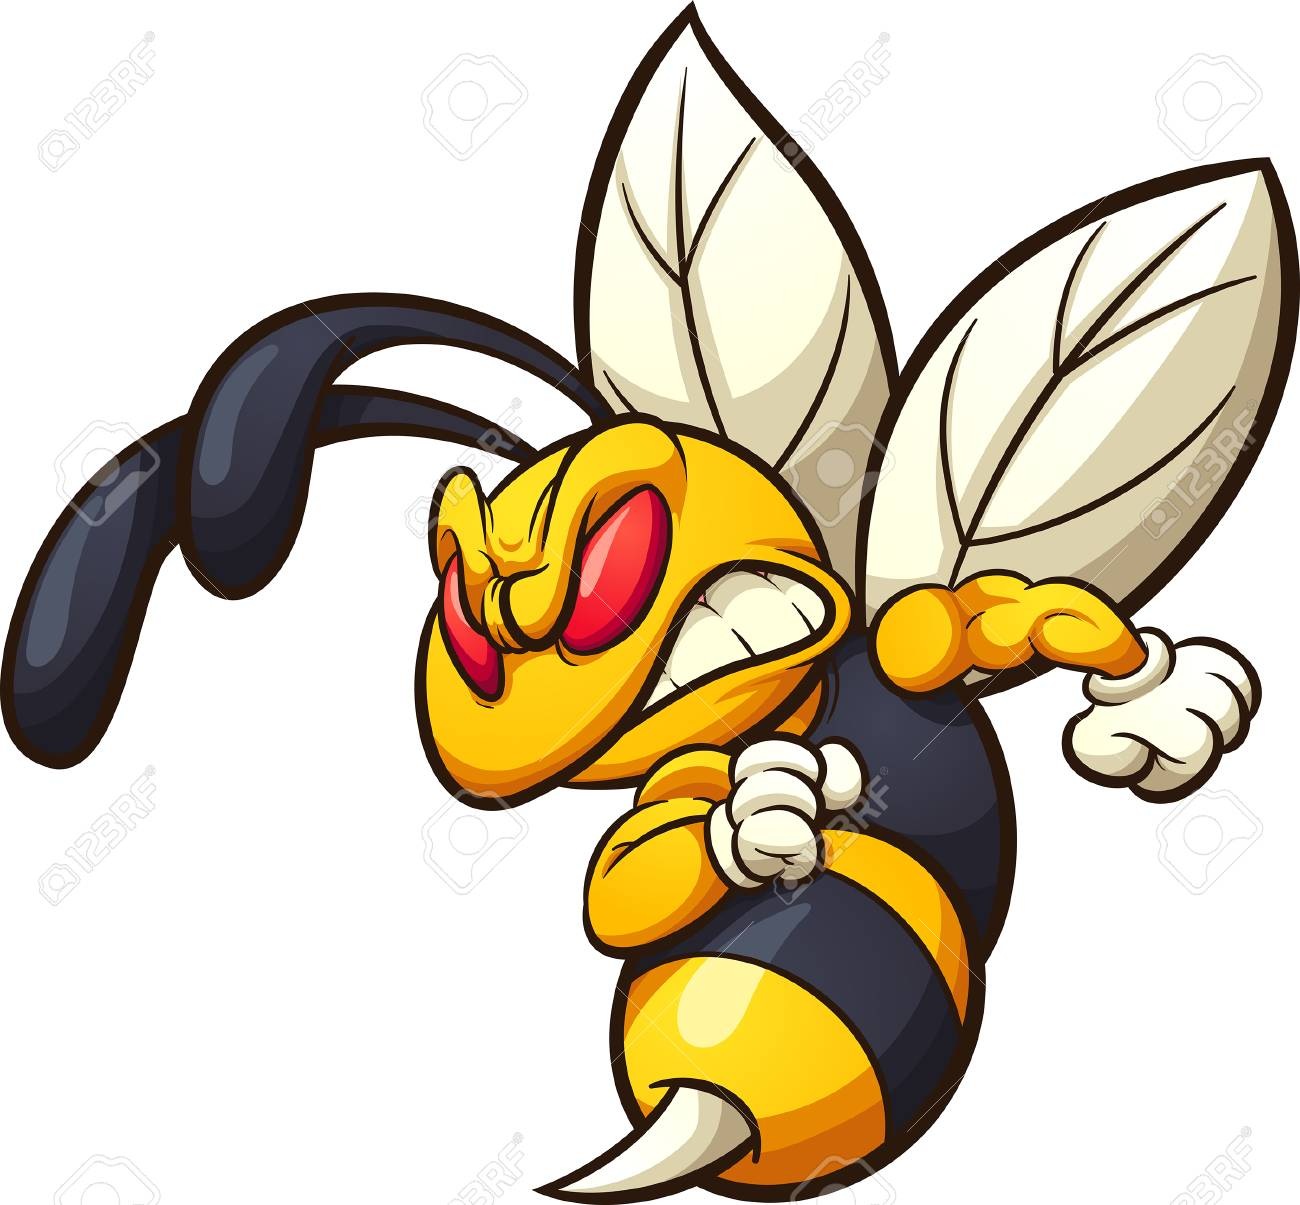 Angry Hornet Wasp Or Bee Mascot Clip Art Vector Illustration